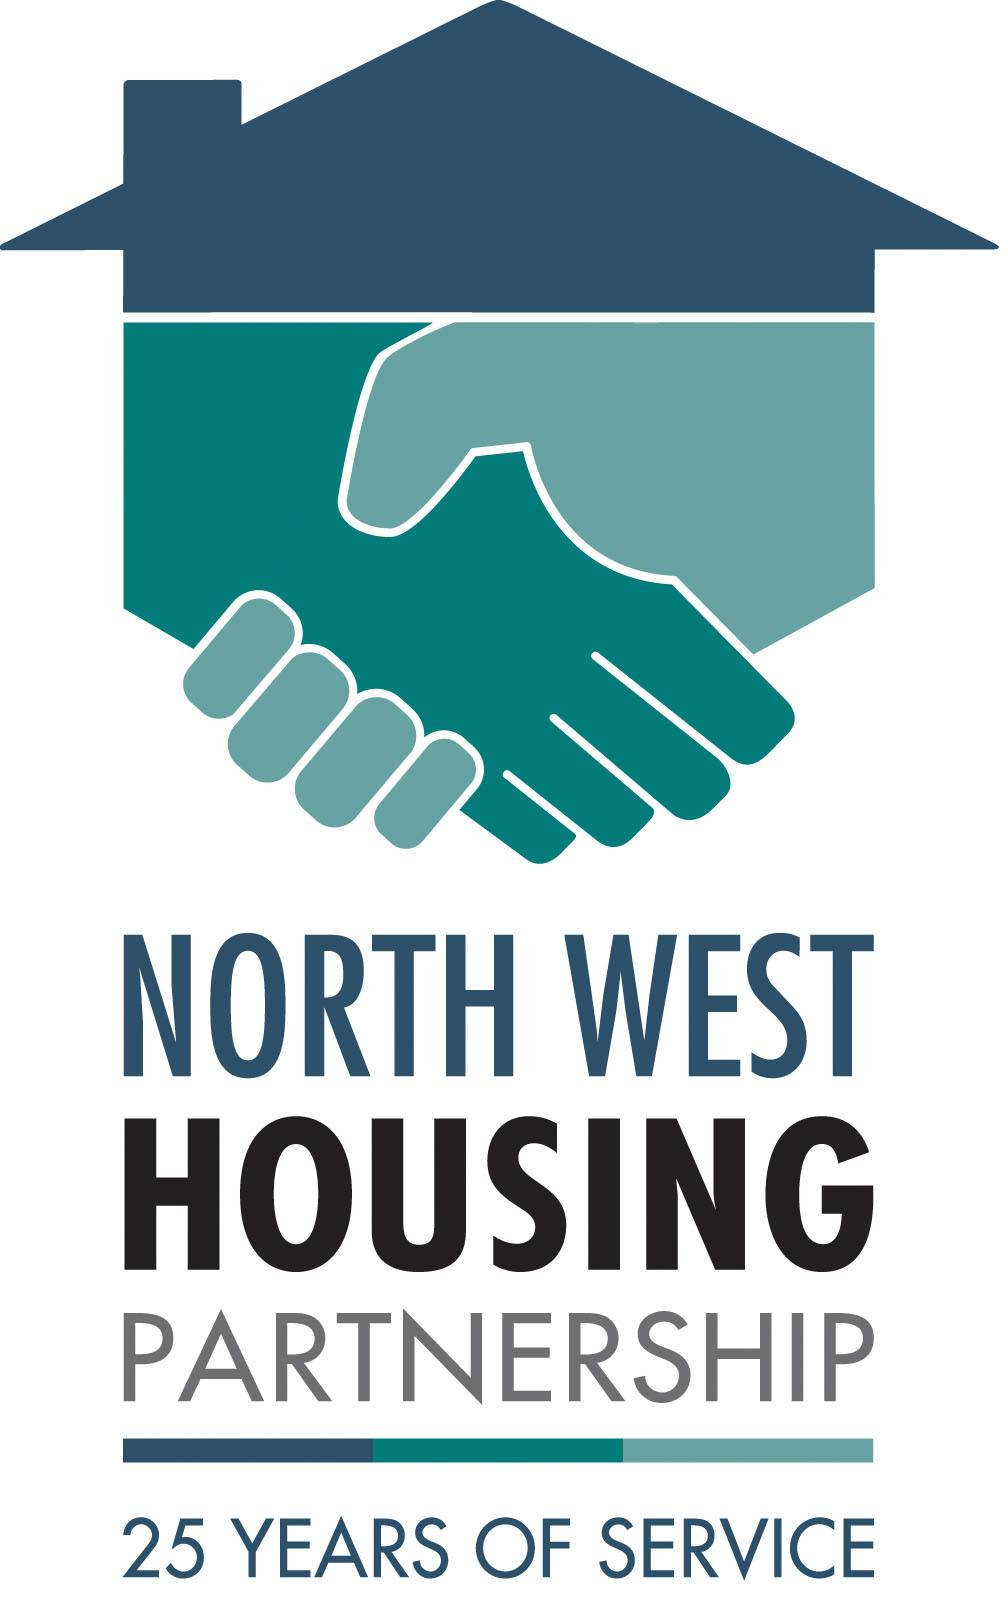 Visit www.NWHP.net to learn more about resources available and service areas in Cook, DuPage, Kane and McHenry counties. North West Housing Partnership